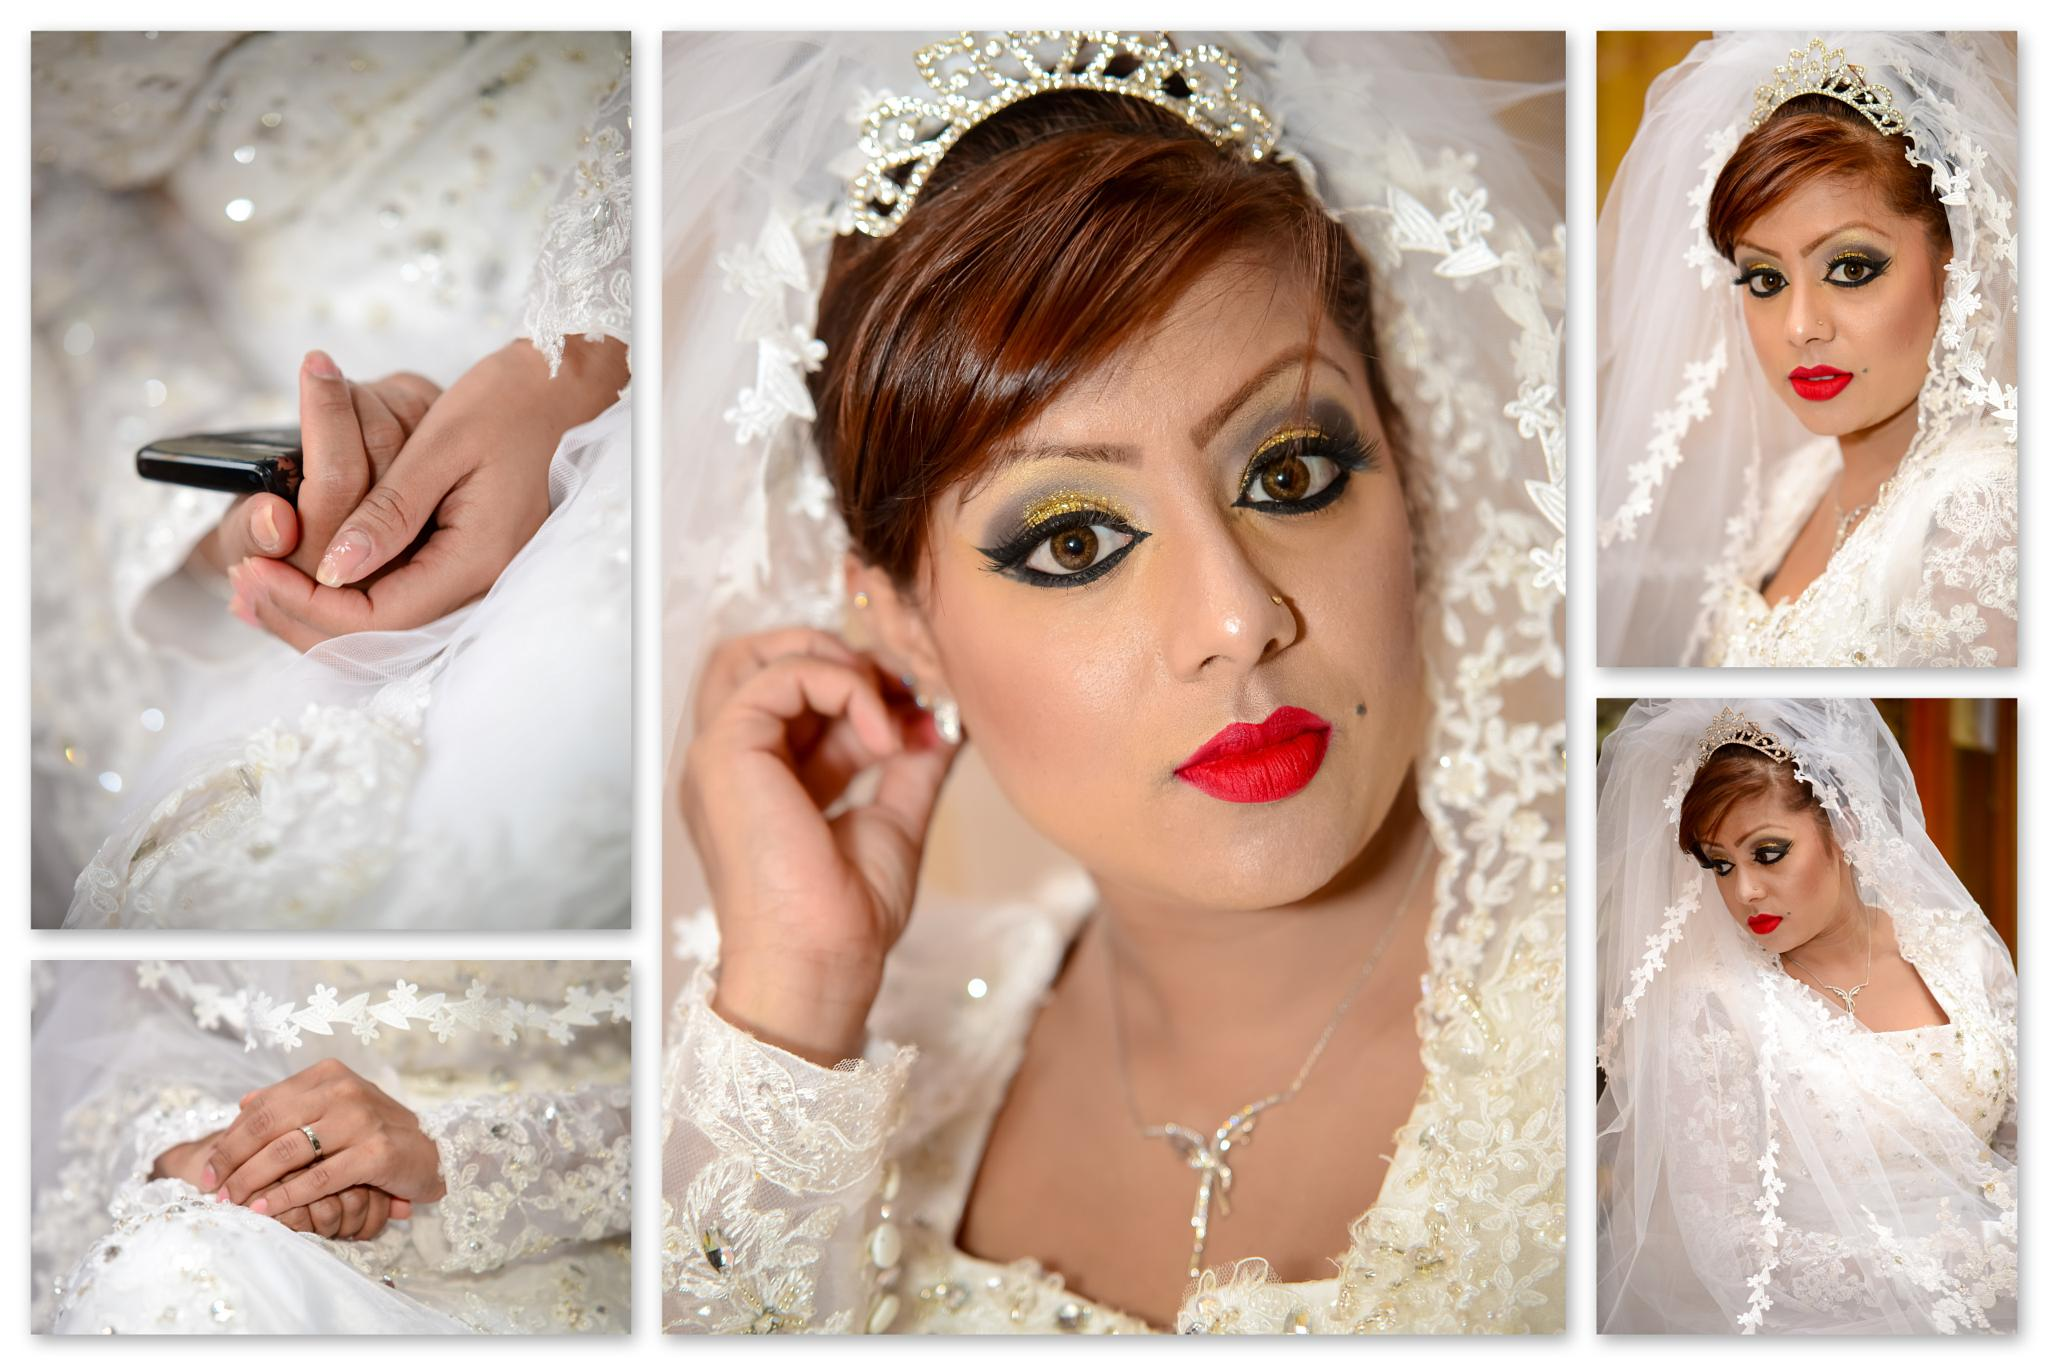 Snaps of a Muslim Bride- Muslim Wedding Shoot in Mauritius by Diksh Potter by Diksh Potter Mauritius Wedding Photographer